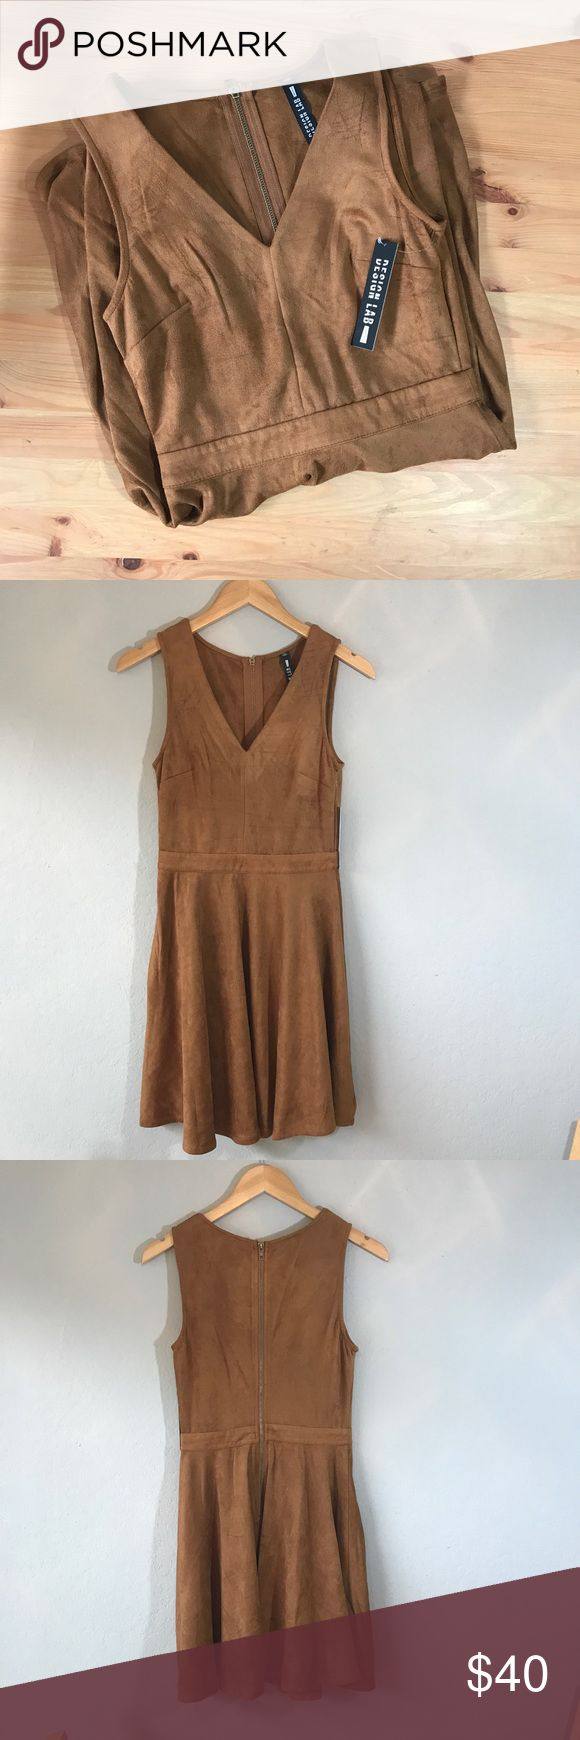 "Design Lab Suede Swing Dress [small] Design Lab by Lord and Taylor super soft and bouncy suede swing/skater dress with v plunge neckline. Camel brown with zipper down the back. Size small. Great color for fall transition! 90% polyester 10% spandex.   Approximate measurements  Bust 15"" Waist 13"" Length 34""  All of my items ship out within 1 day! (Item #016) Lord & Taylor Dresses"